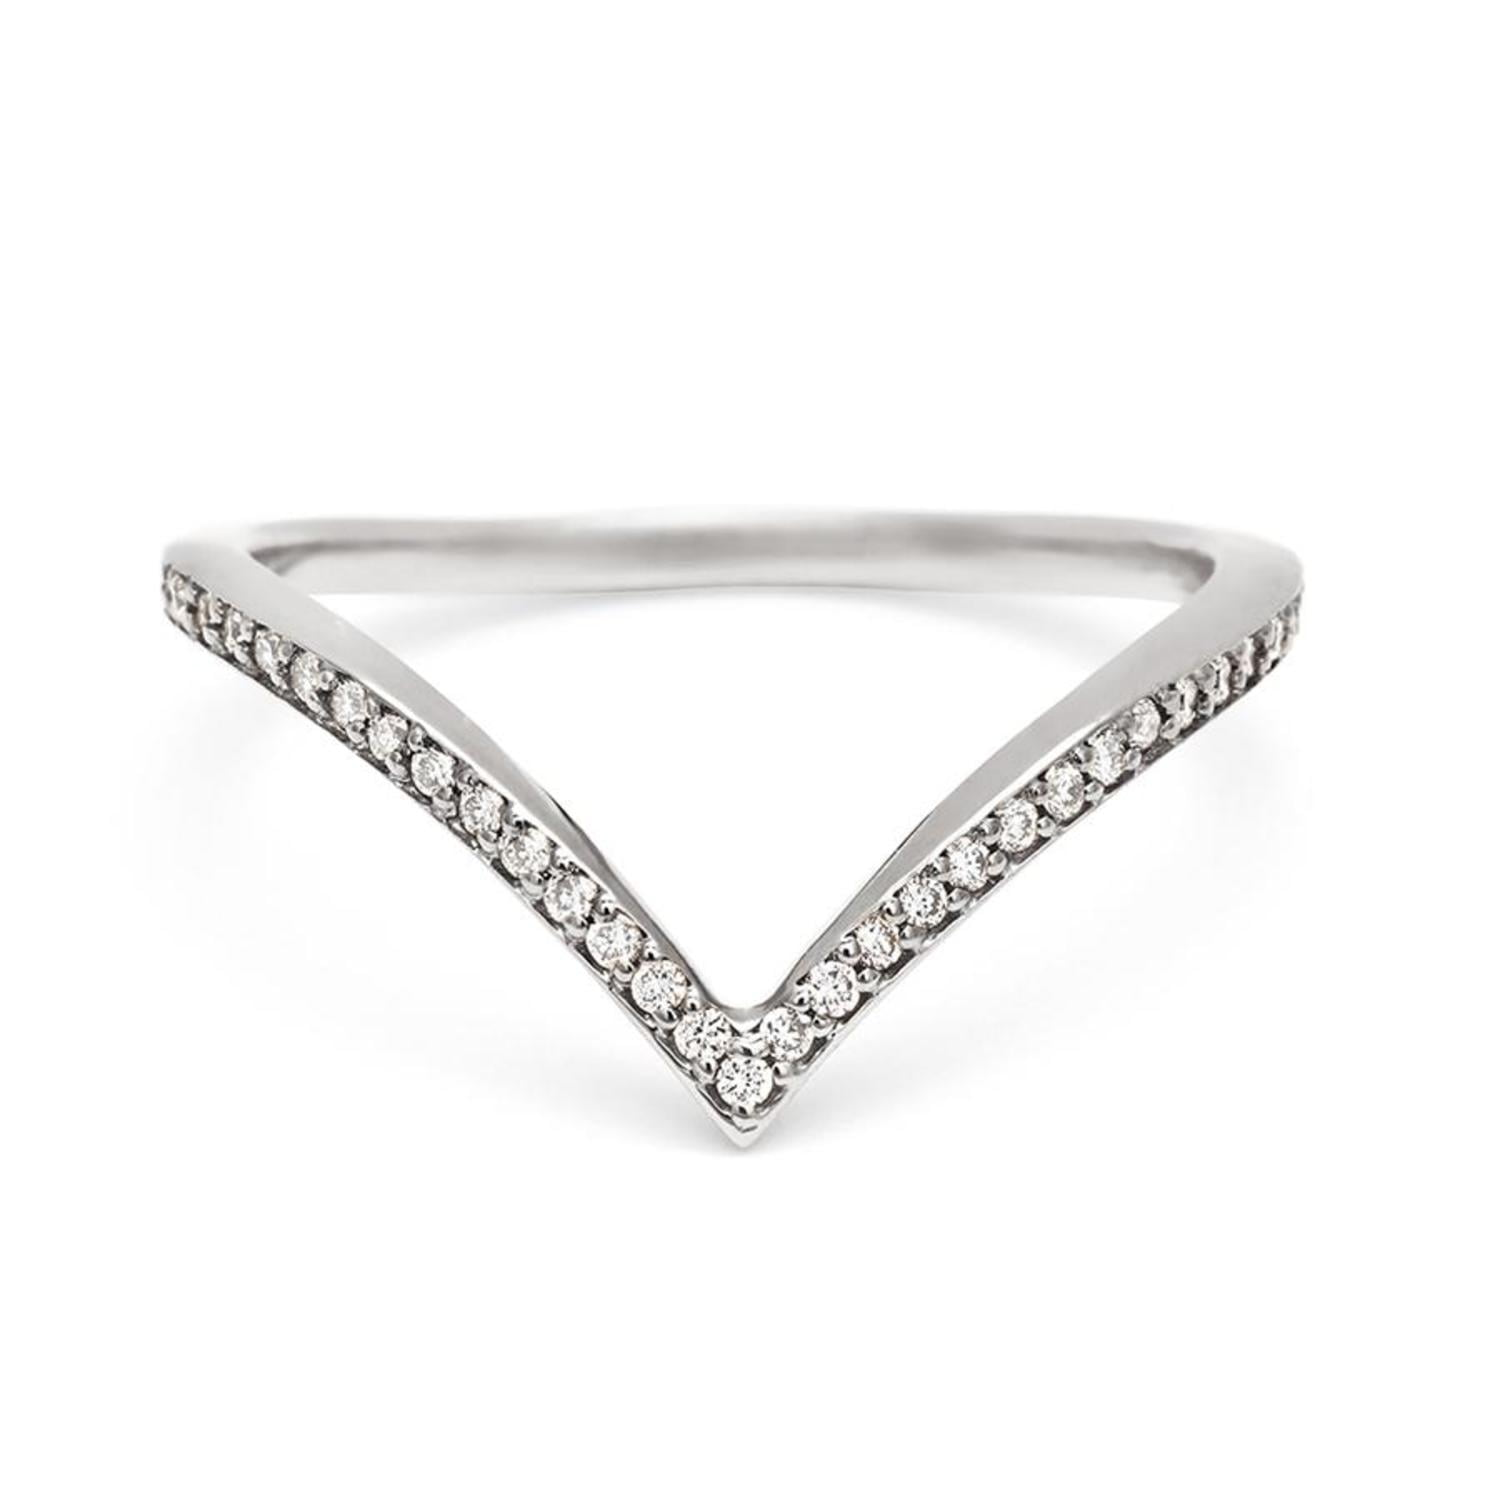 Diamond Dusted Chrysalis Band in Platinum with White Diamonds